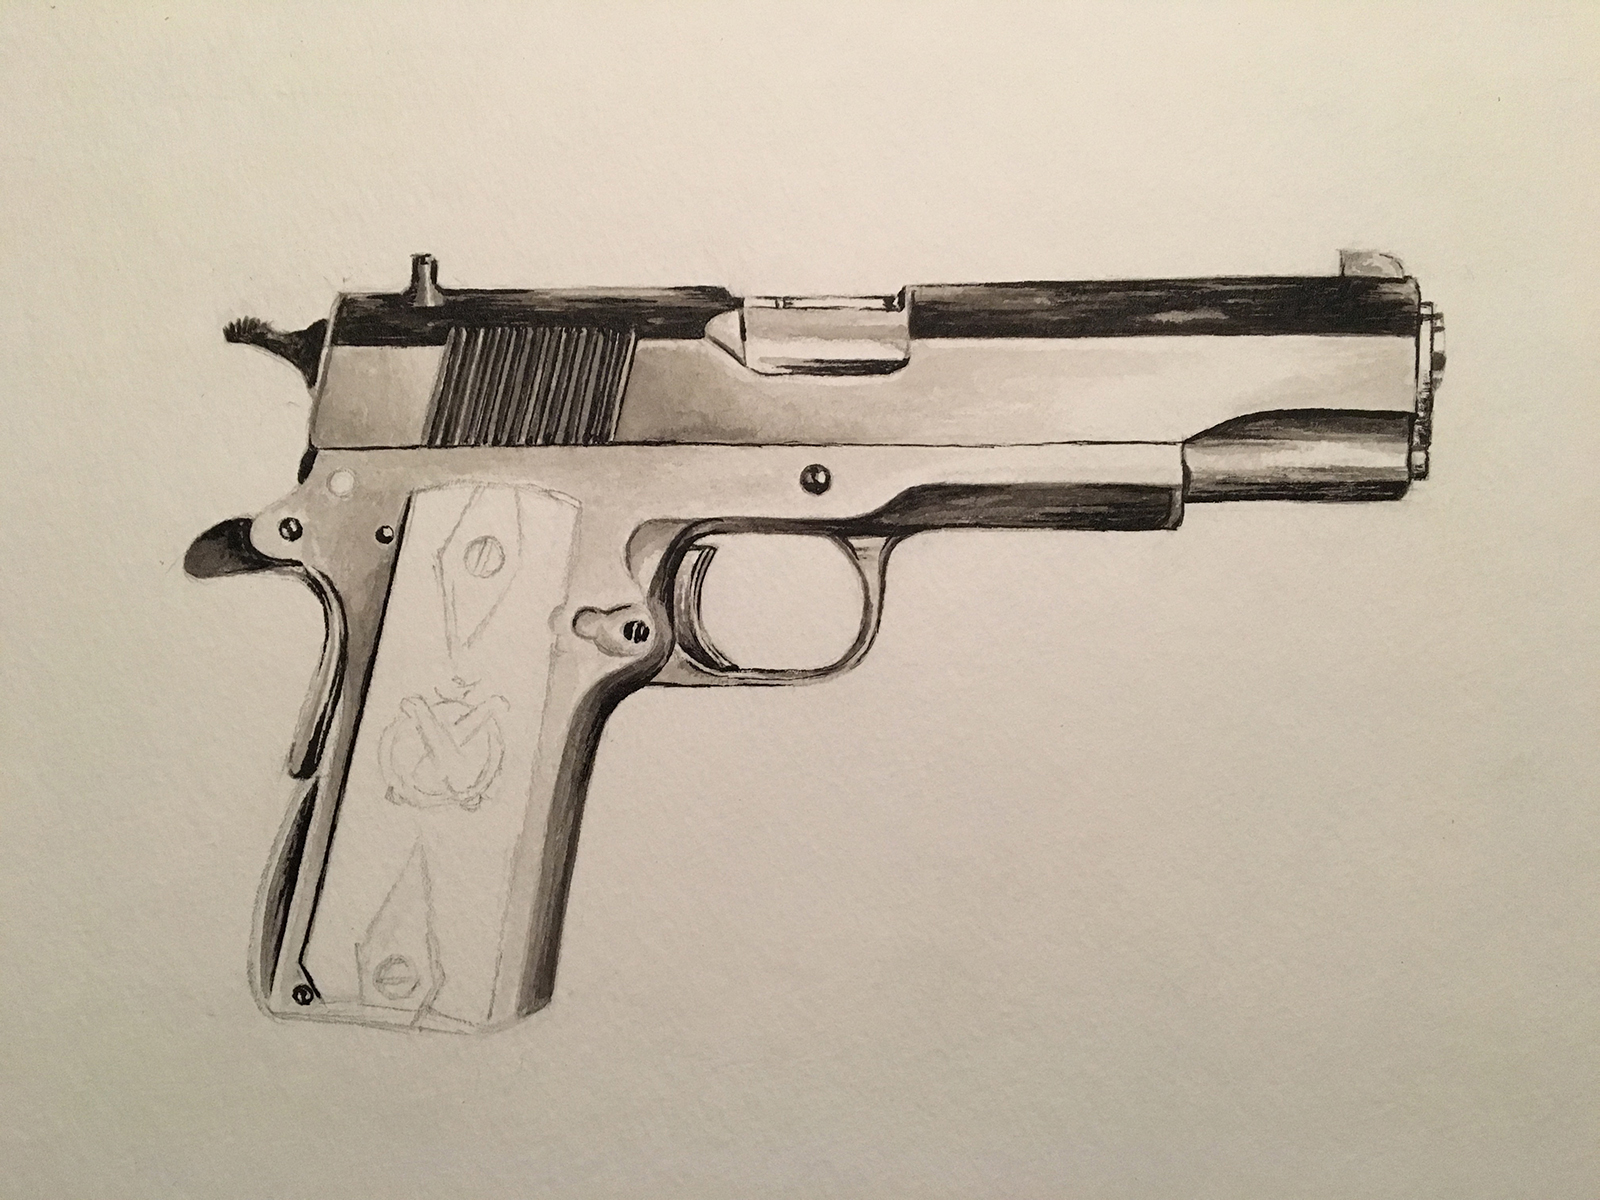 springfield 1911 ink wash painting process shot by jordan fretz